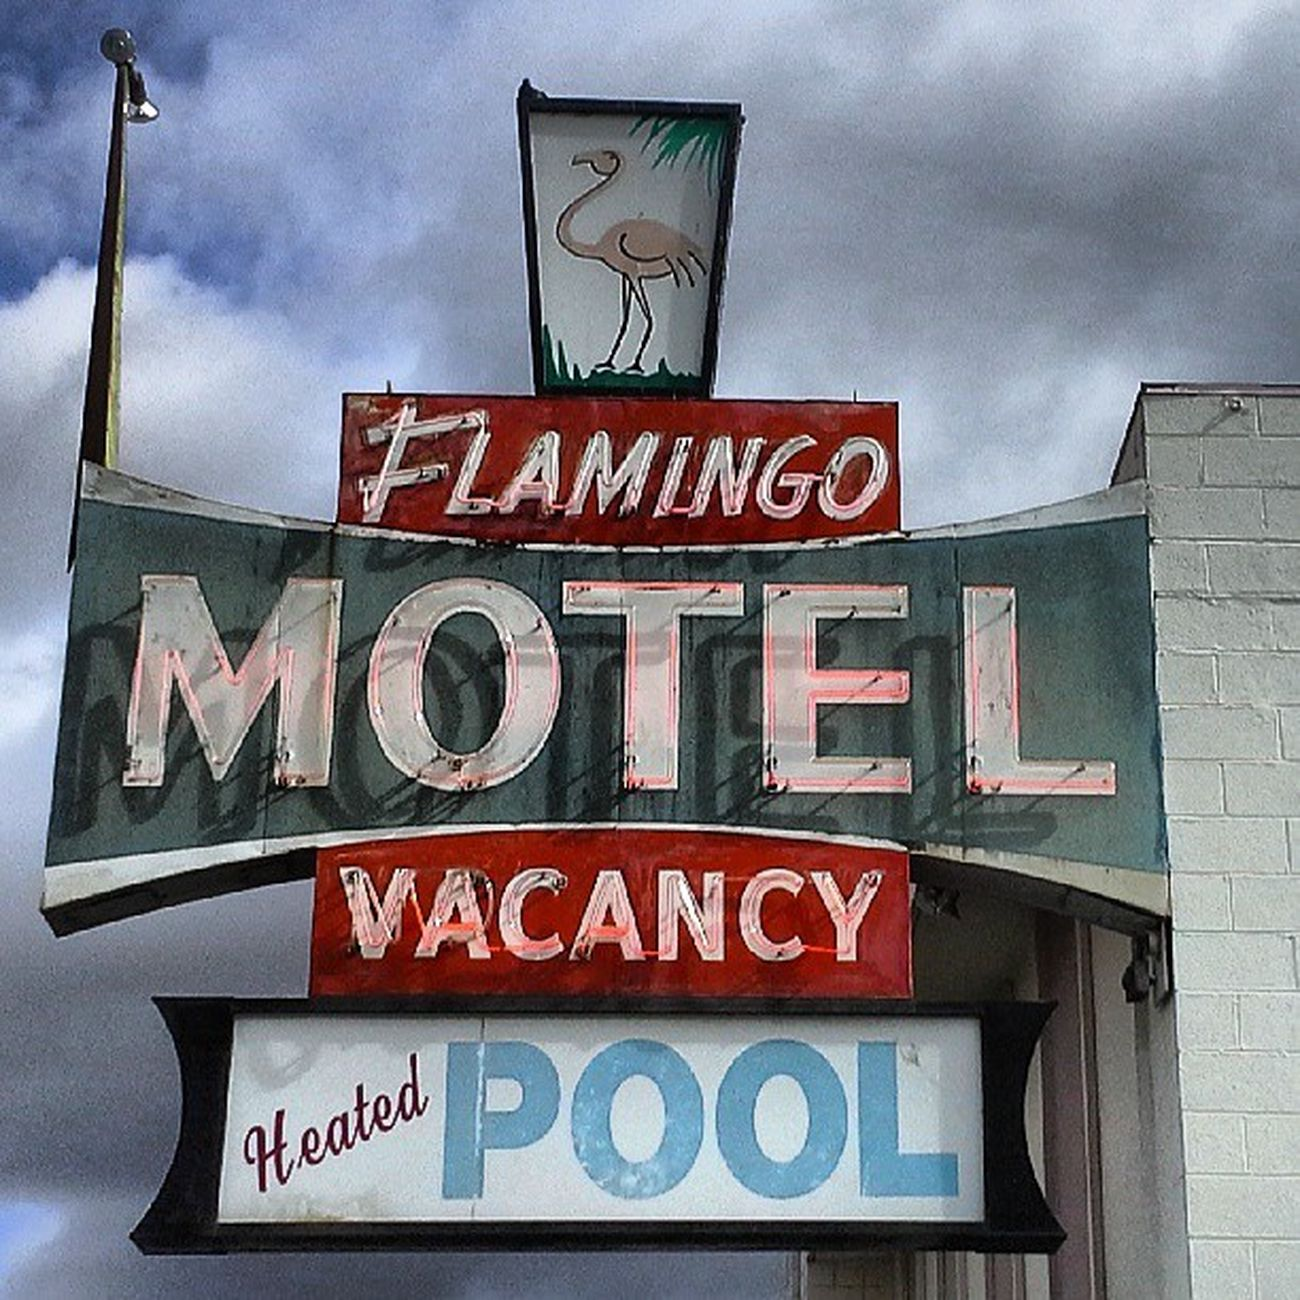 Street Streetphotography Pool Signage Roadtrip Vacation Hotel Vacancy Neon Sign Flamingos Motel Photooftheday Nofilter Reno Topography Lettering Pro_shooters Oldsigns Signgeeks Vintagesigns Signstalkers Lettergetter Vintageneon Justsigns Pink_shooters Oldreno